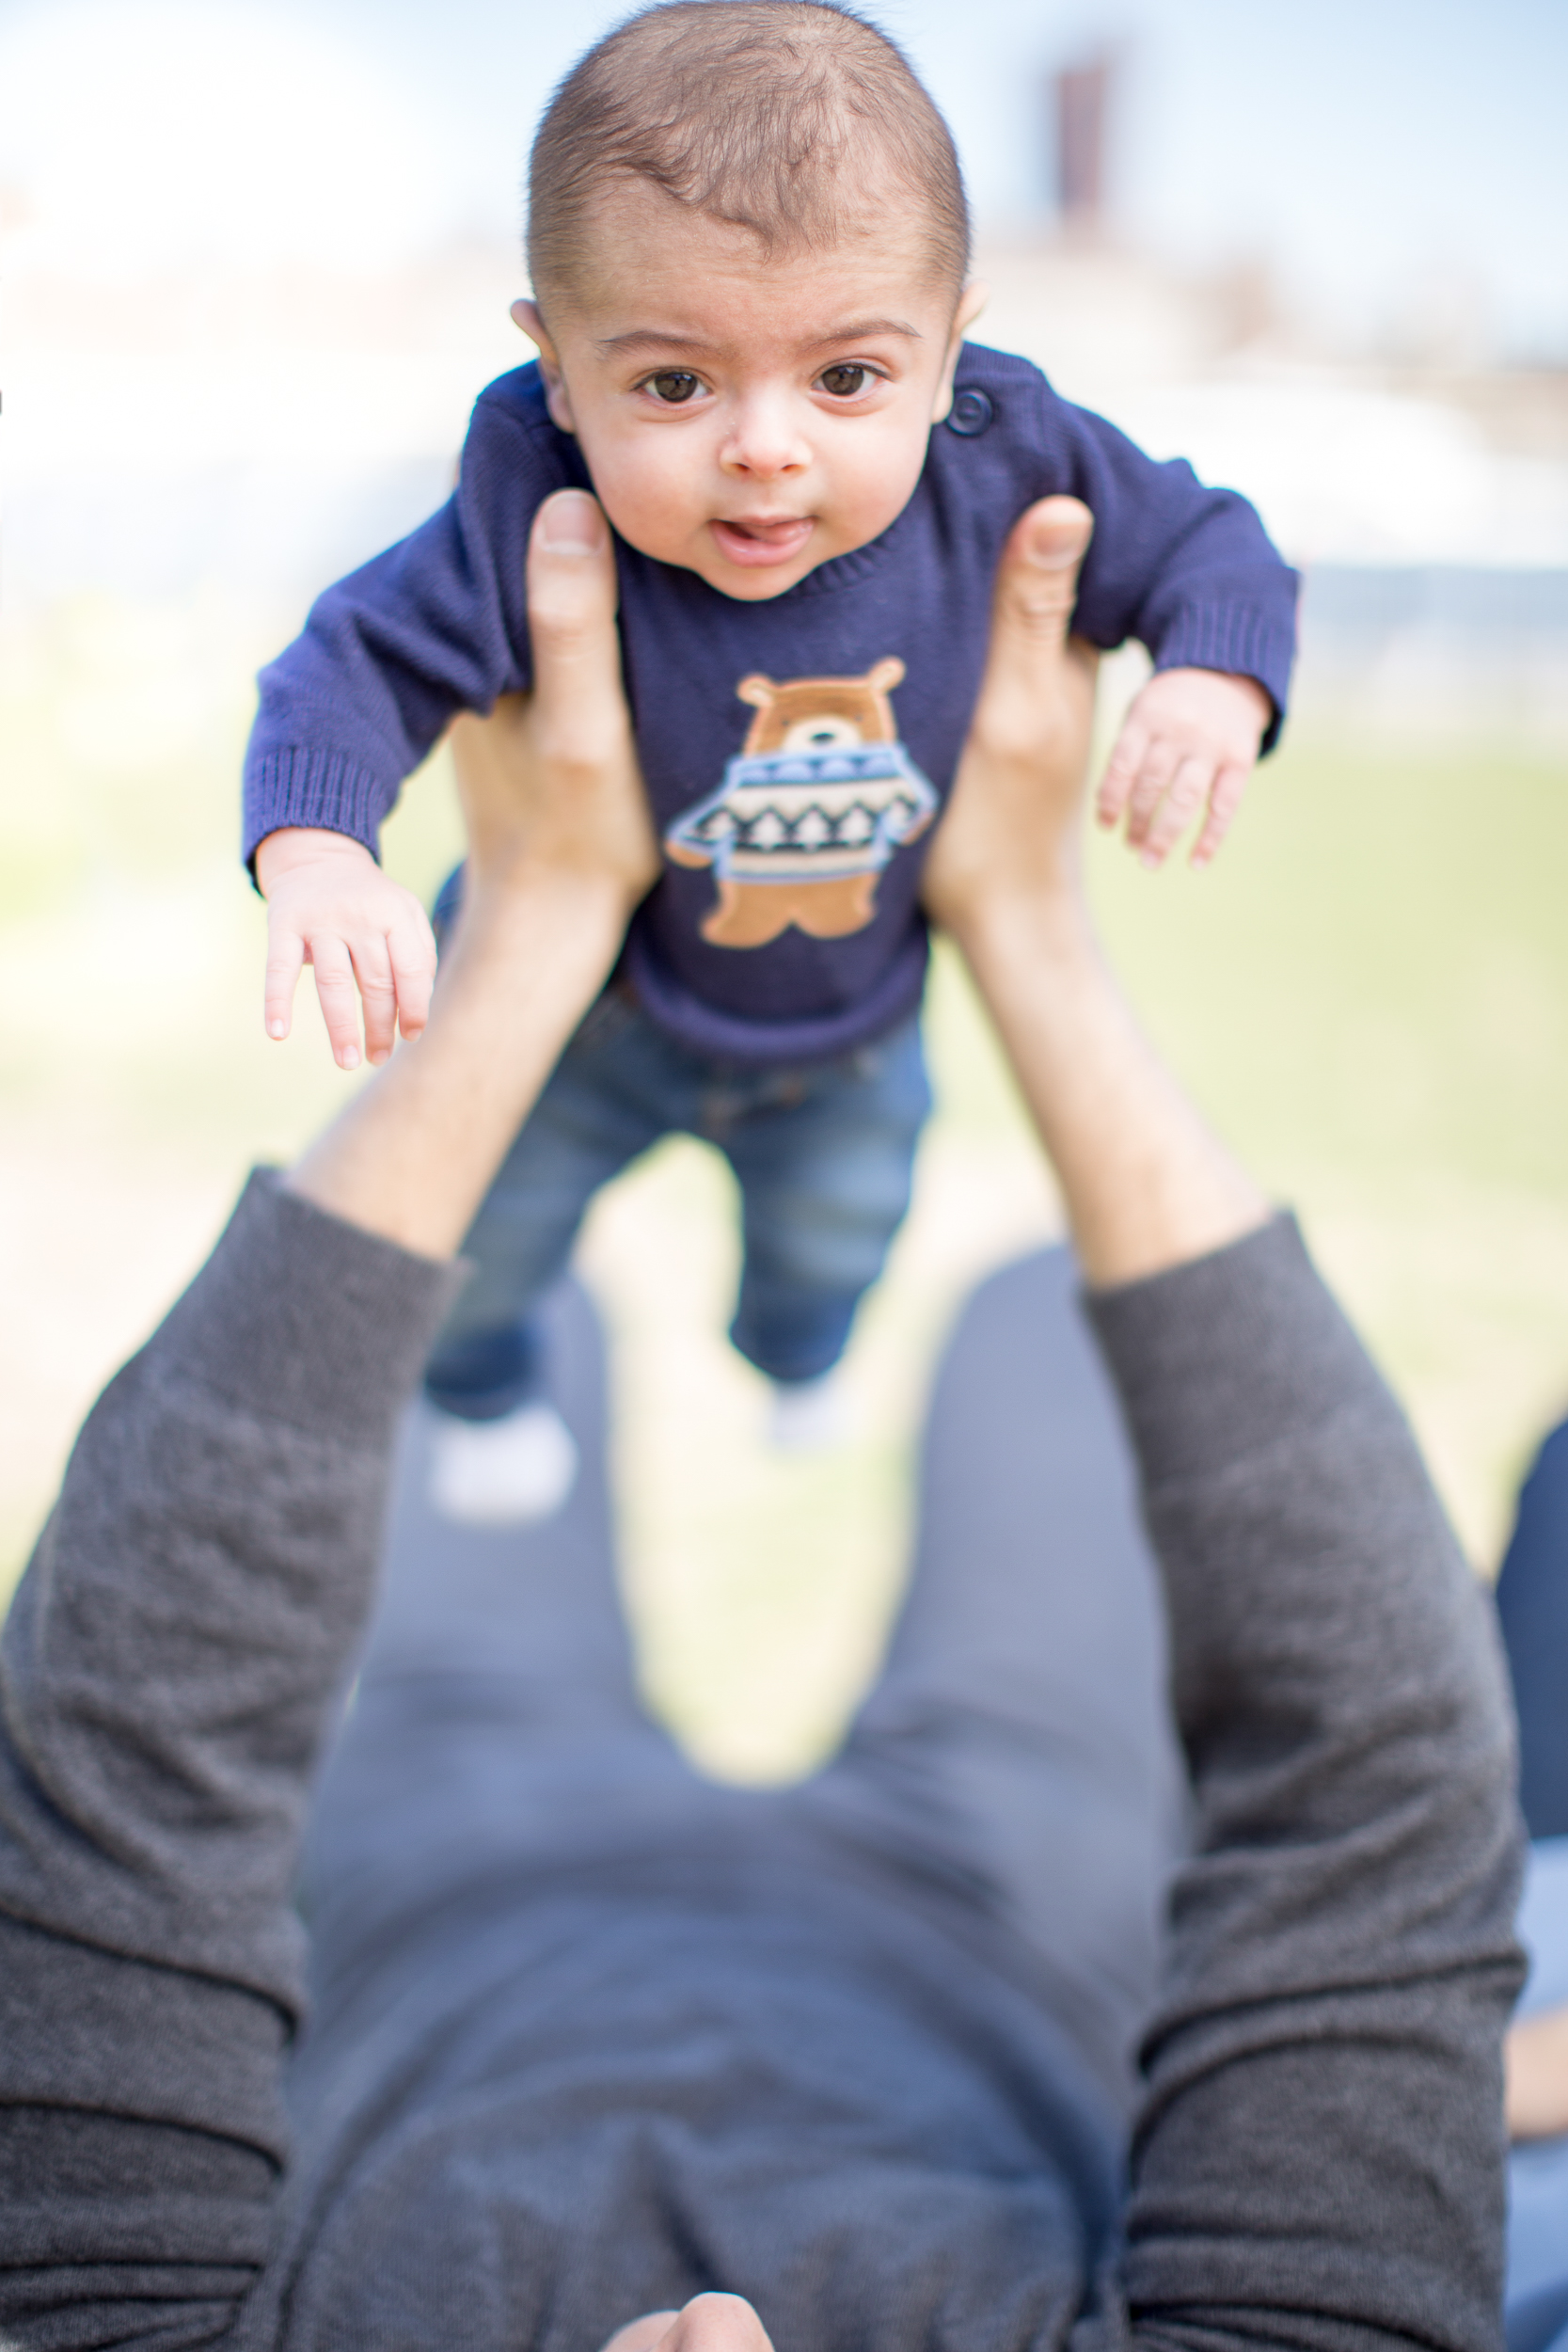 Holding Baby Way Up High